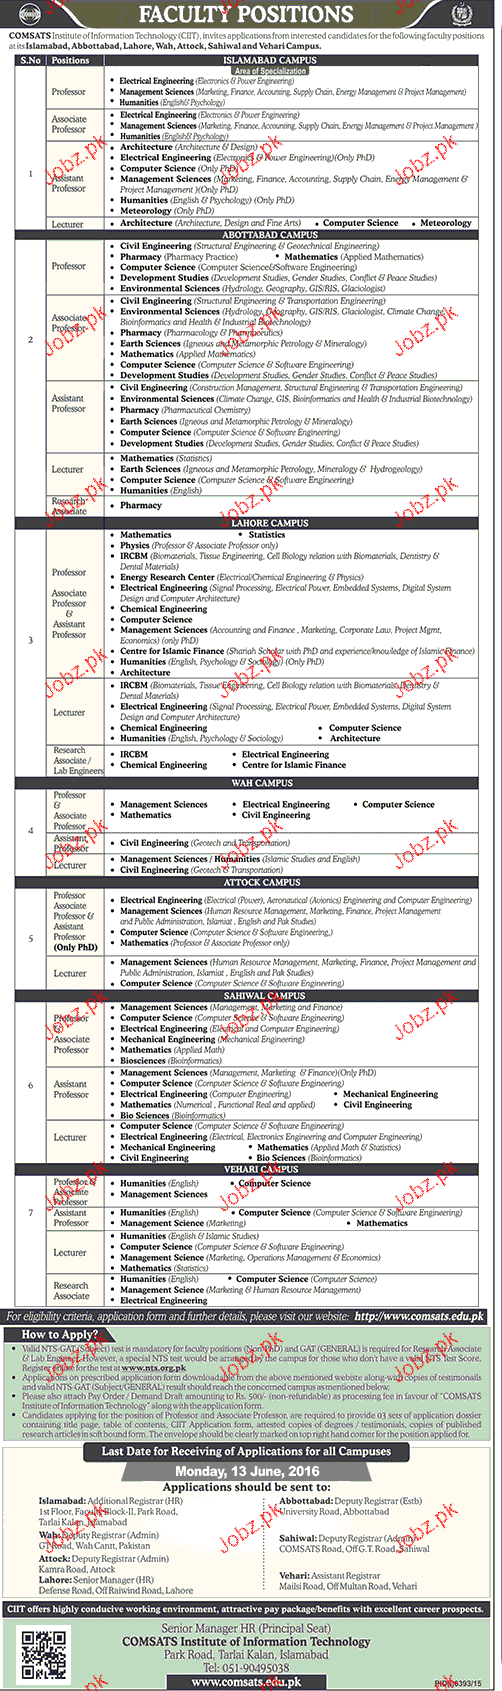 Teaching Job in COMSATS Institute of Information Technology